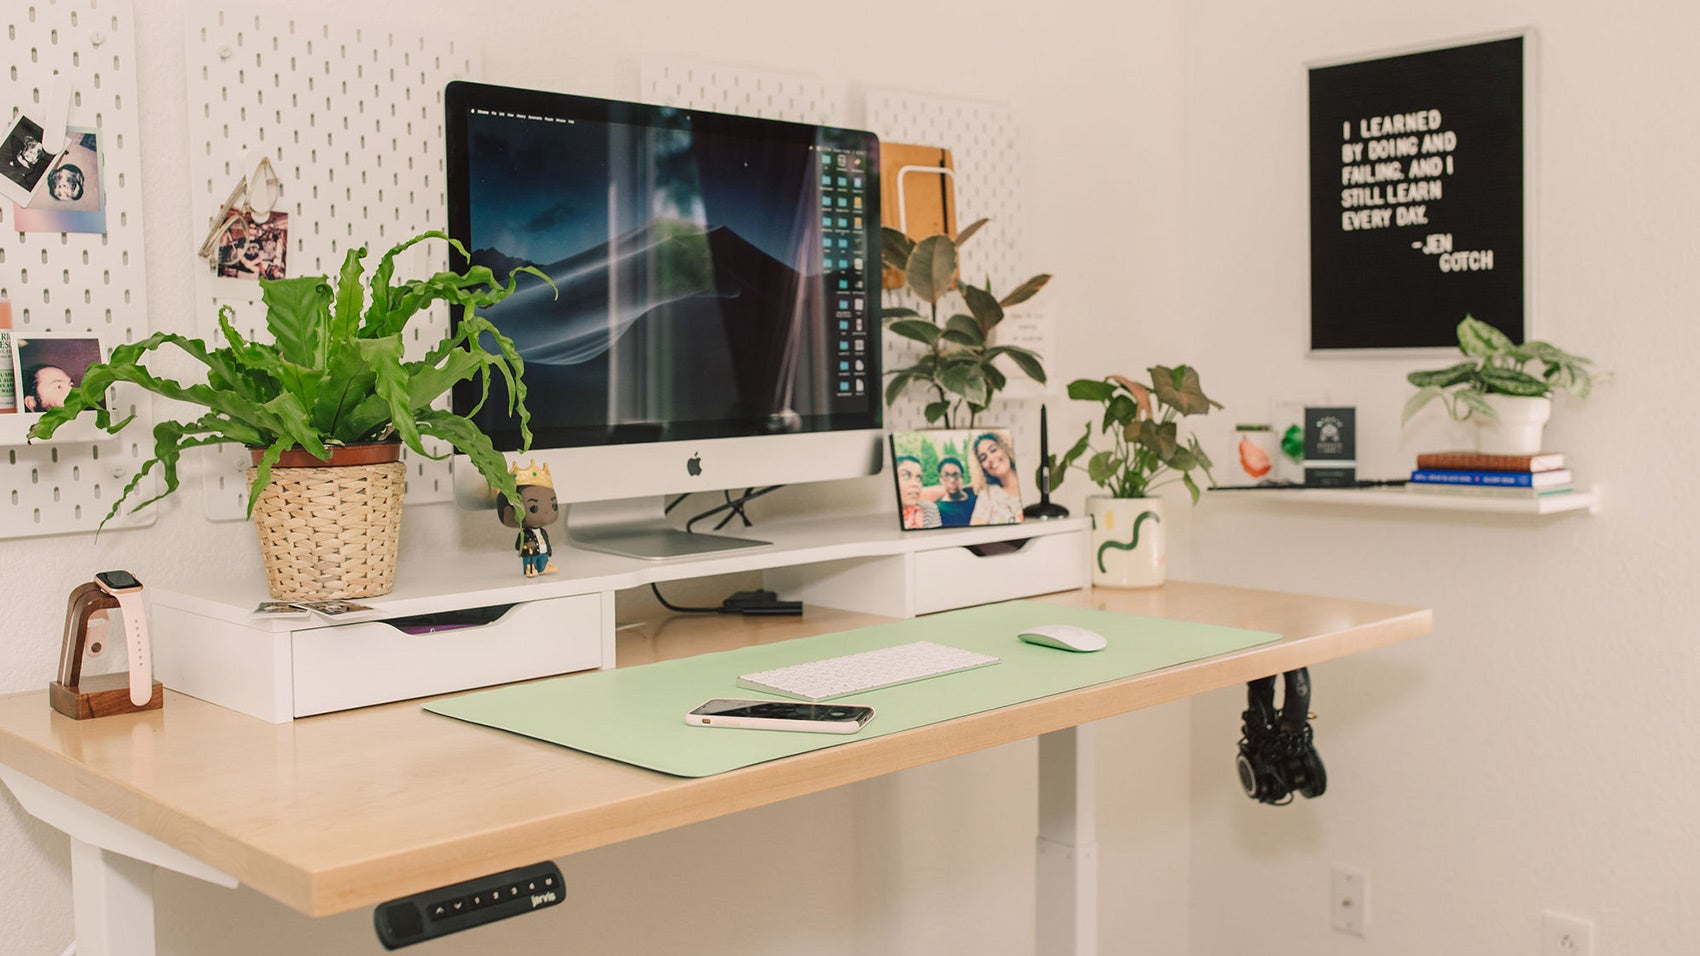 Jarvis hardwood standing desk with a monitor and working supplies